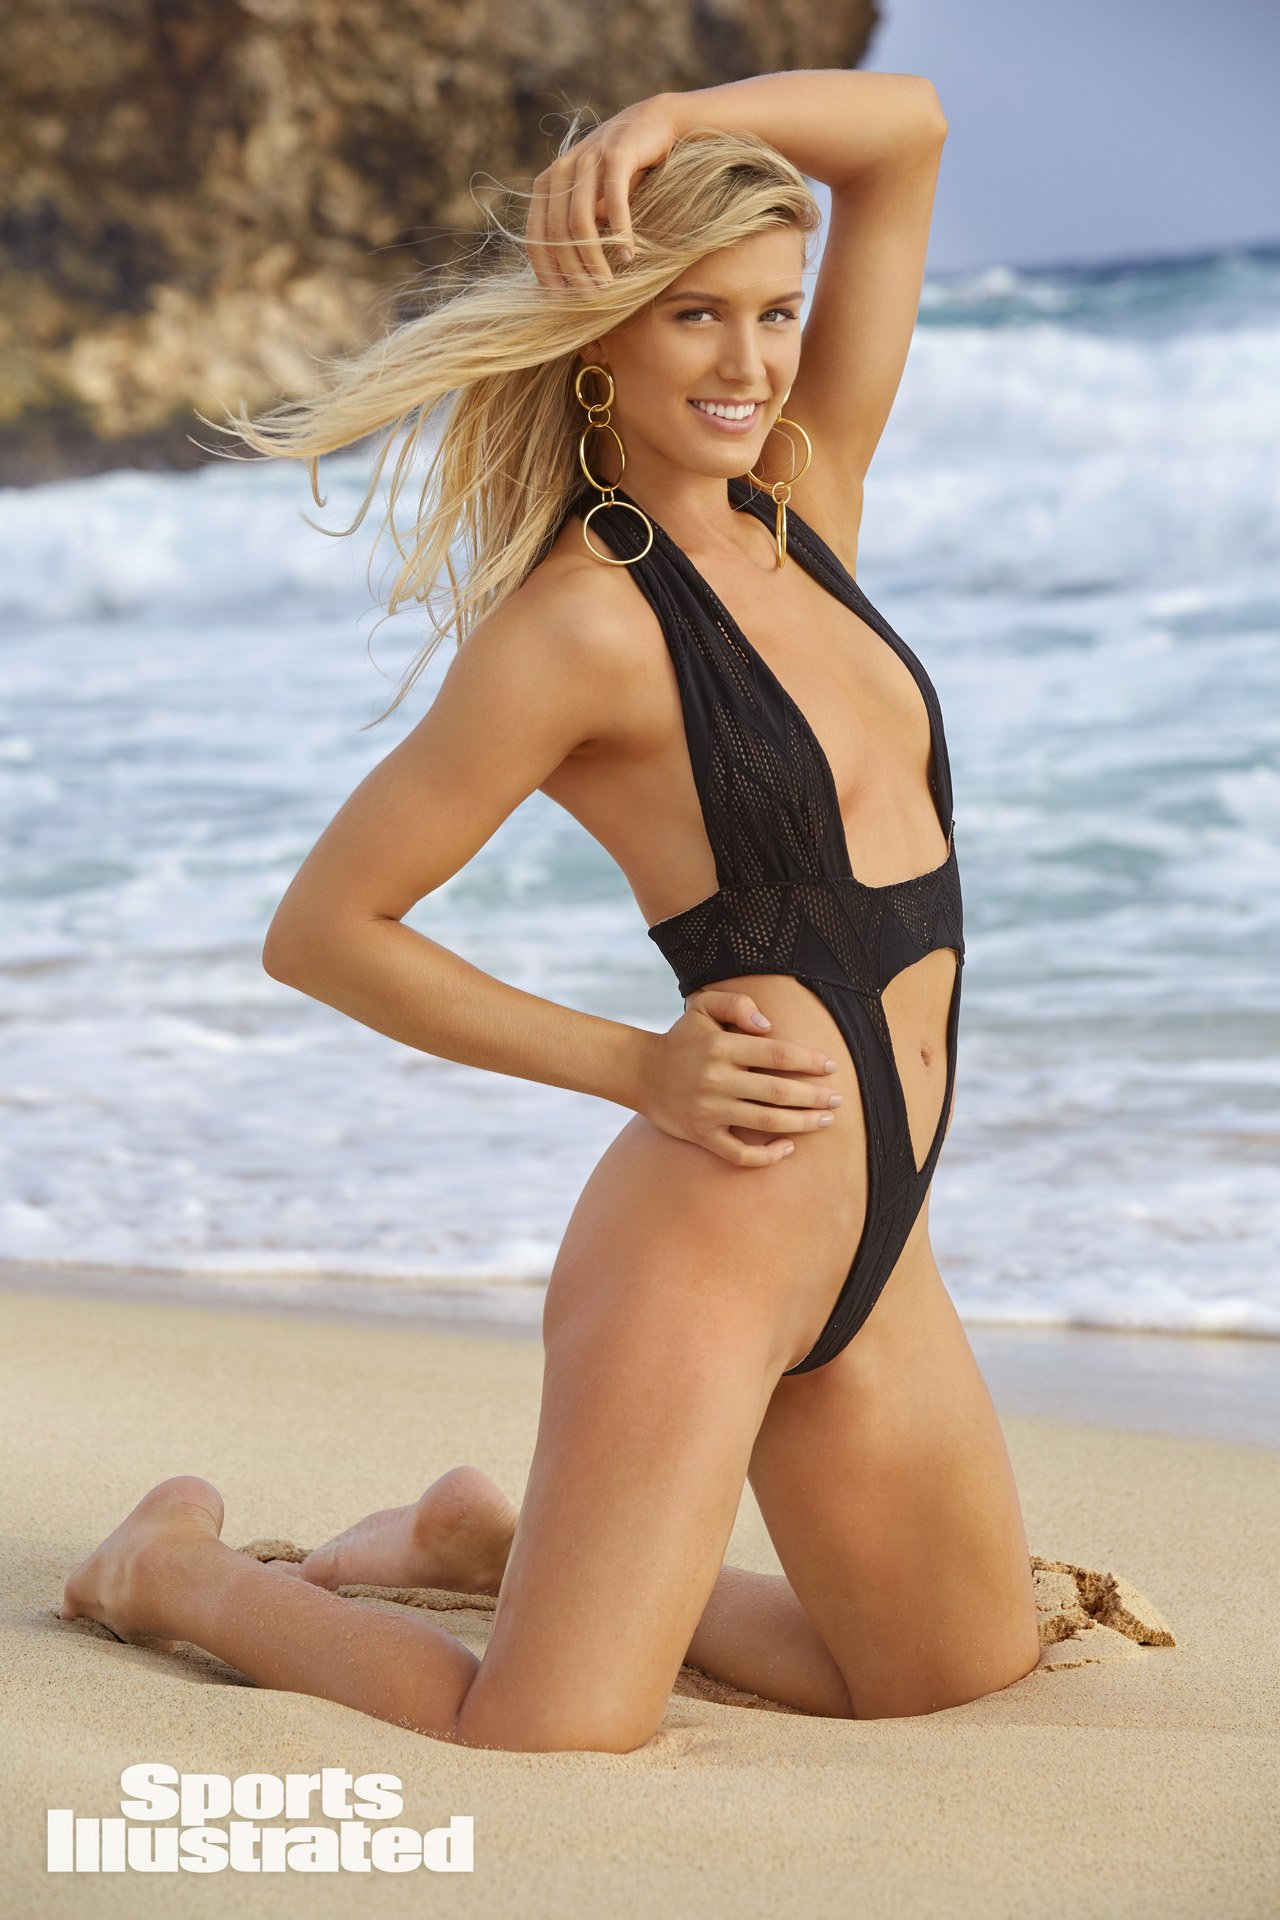 Naked Genie Bouchard stuns in Sport Illustrated photos